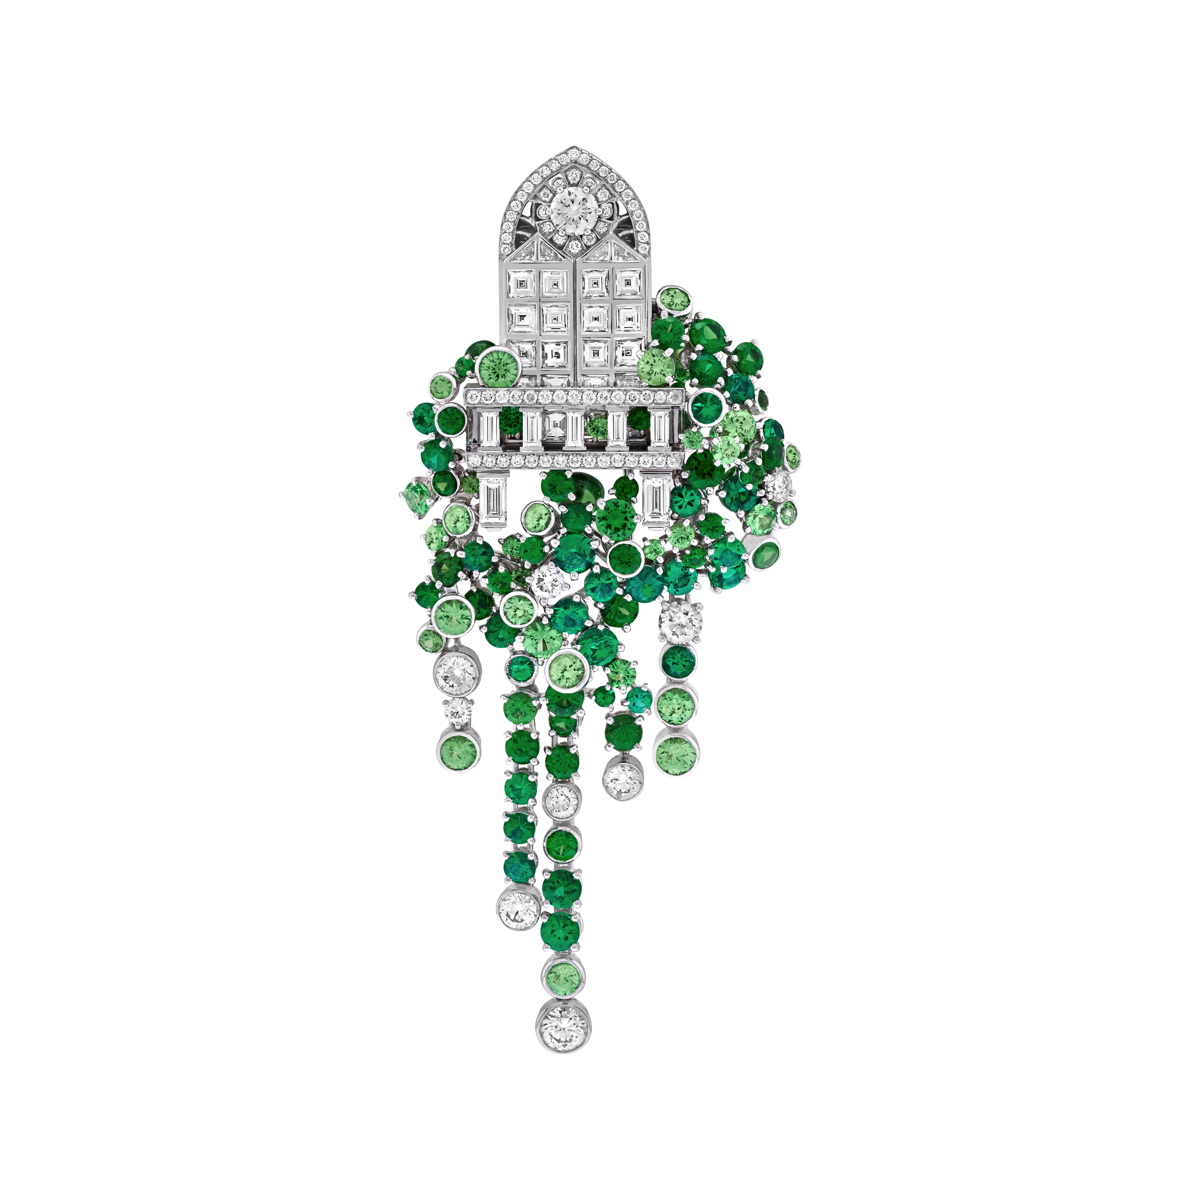 fashion week, van cleef & arpels